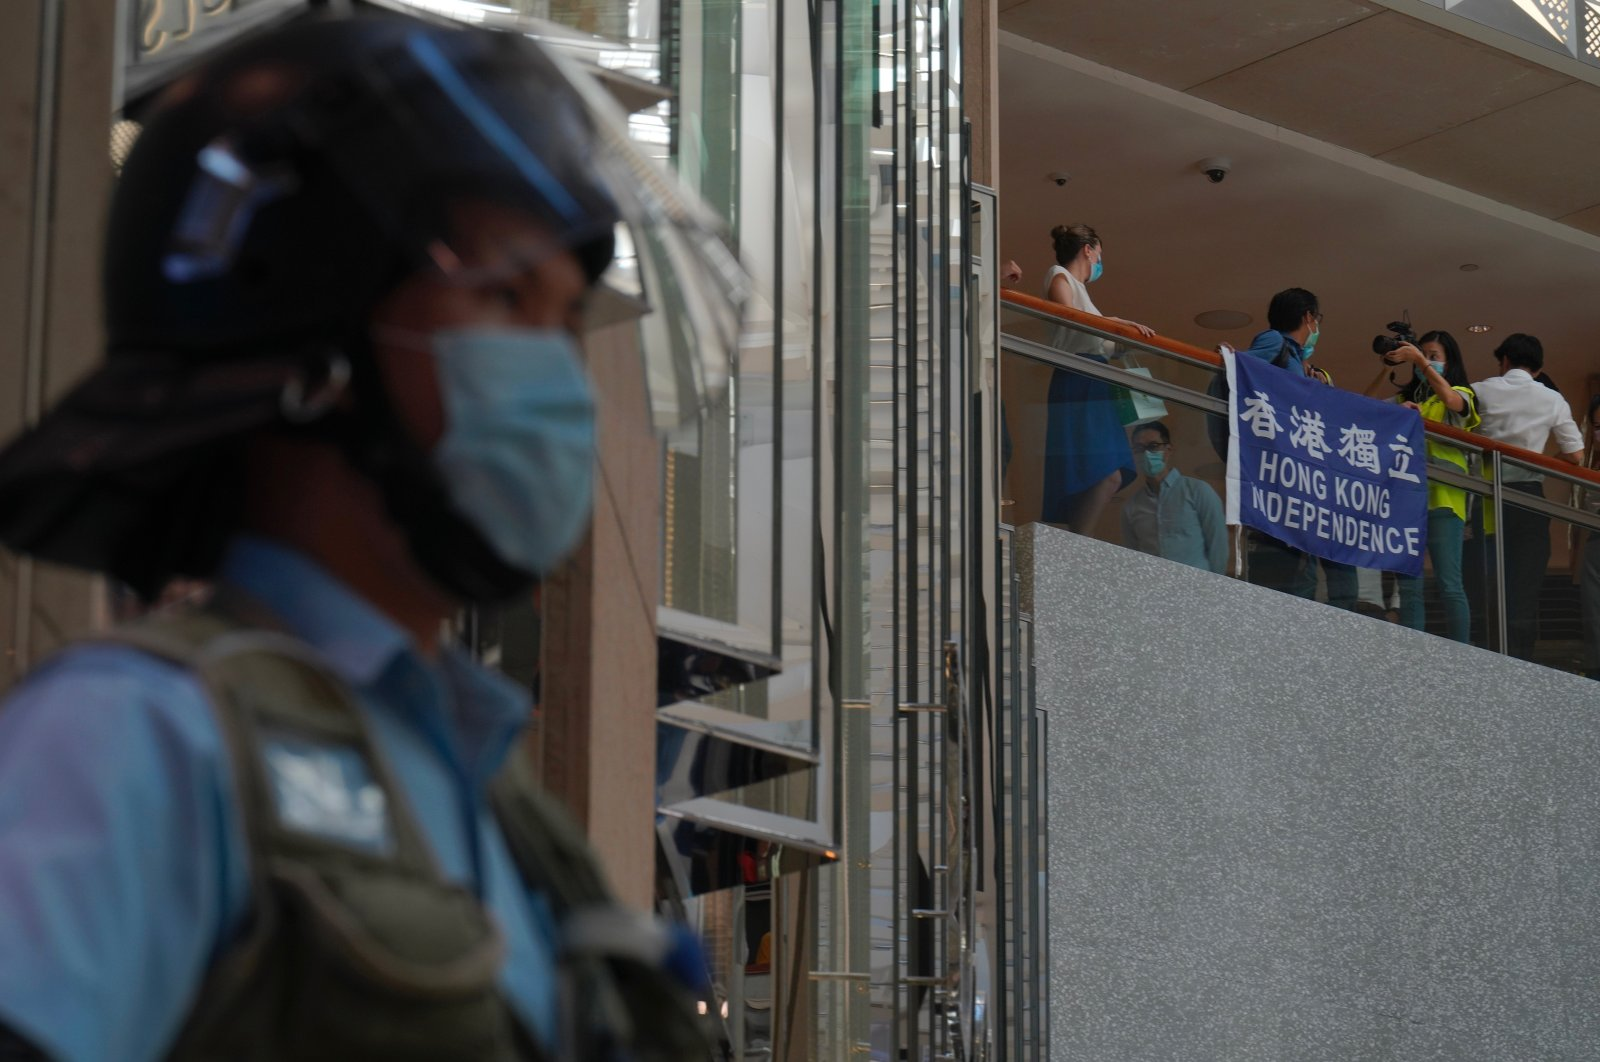 A police officer stands guard as protesters gather at a shopping mall in Central during a pro-democracy protest against Beijing's national security law in Hong Kong, June 30, 2020. (AP Photo)